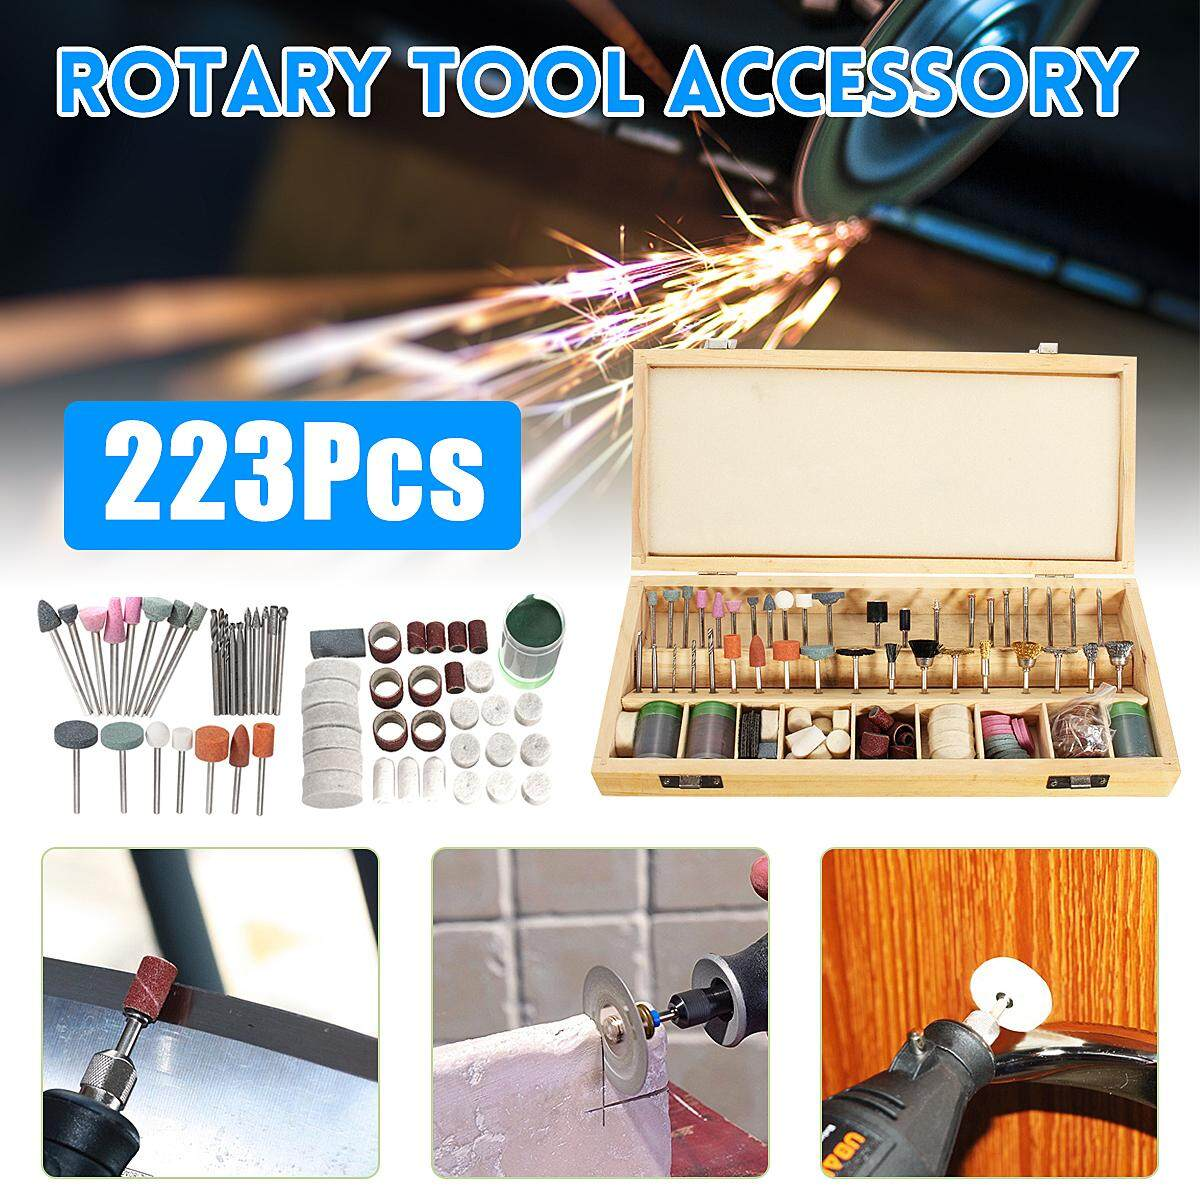 【Free Shipping + Flash Deal】223pc Rotary Tool Accessory Bit Set w Case 1/8 Accessories Grinding